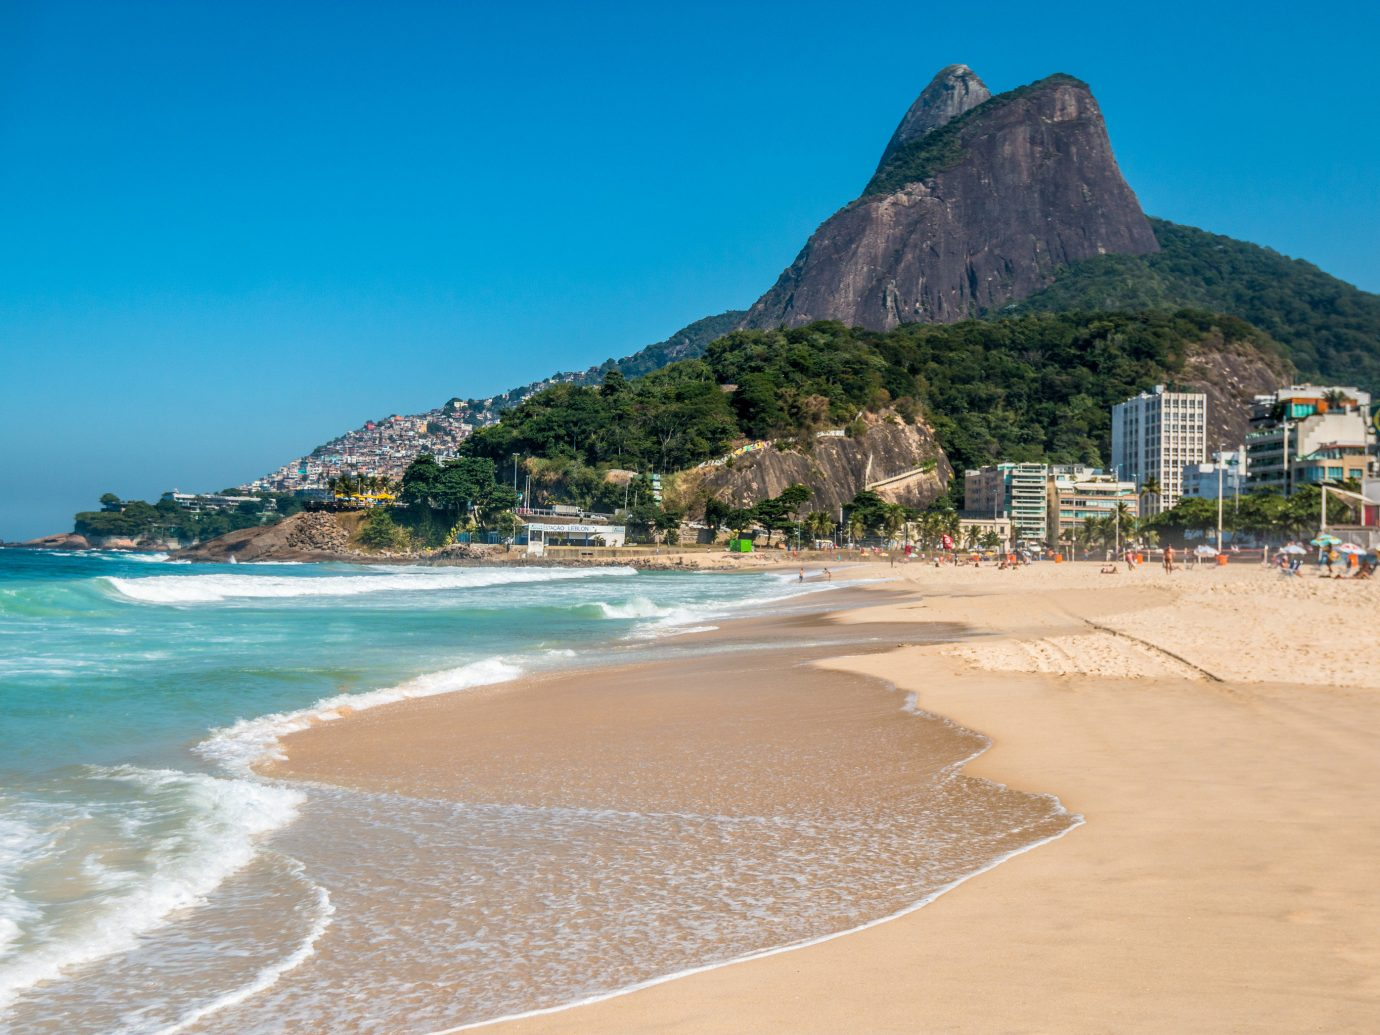 sky outdoor Beach Nature water Sea Coast ground body of water coastal and oceanic landforms shore promontory Ocean mountain sand cape bay tourism terrain vacation headland wave cove sandy